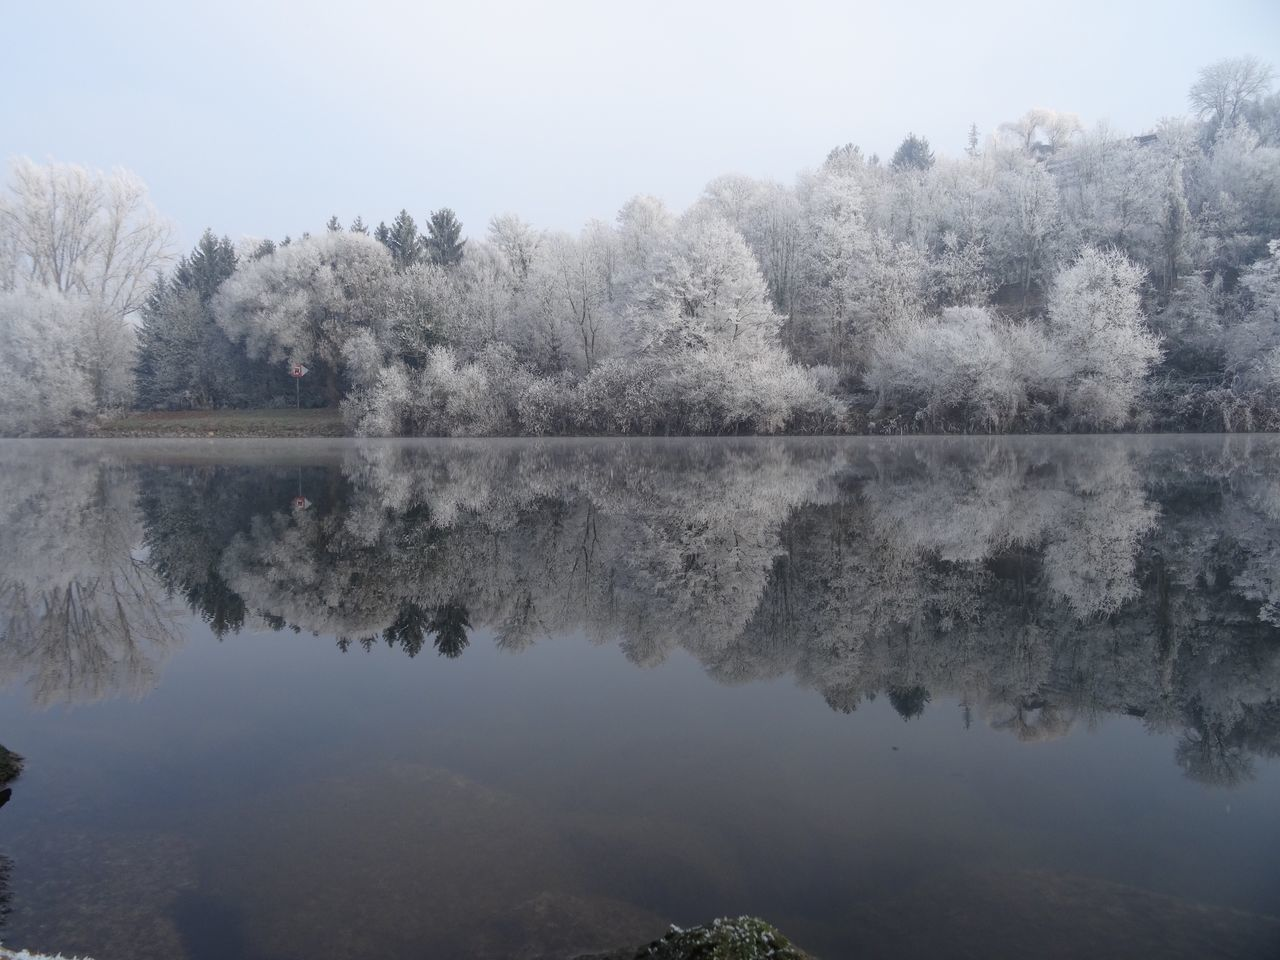 Neckar Outdoors No People Germany Tree Beauty In Nature Scenics Tranquil Scene Nature Symmetry Lake Reflection Water Peaceful Tranquility Cold Temperature Winter New Year Snow White Frost Frost Landscape Freshness Lake View Idyllic